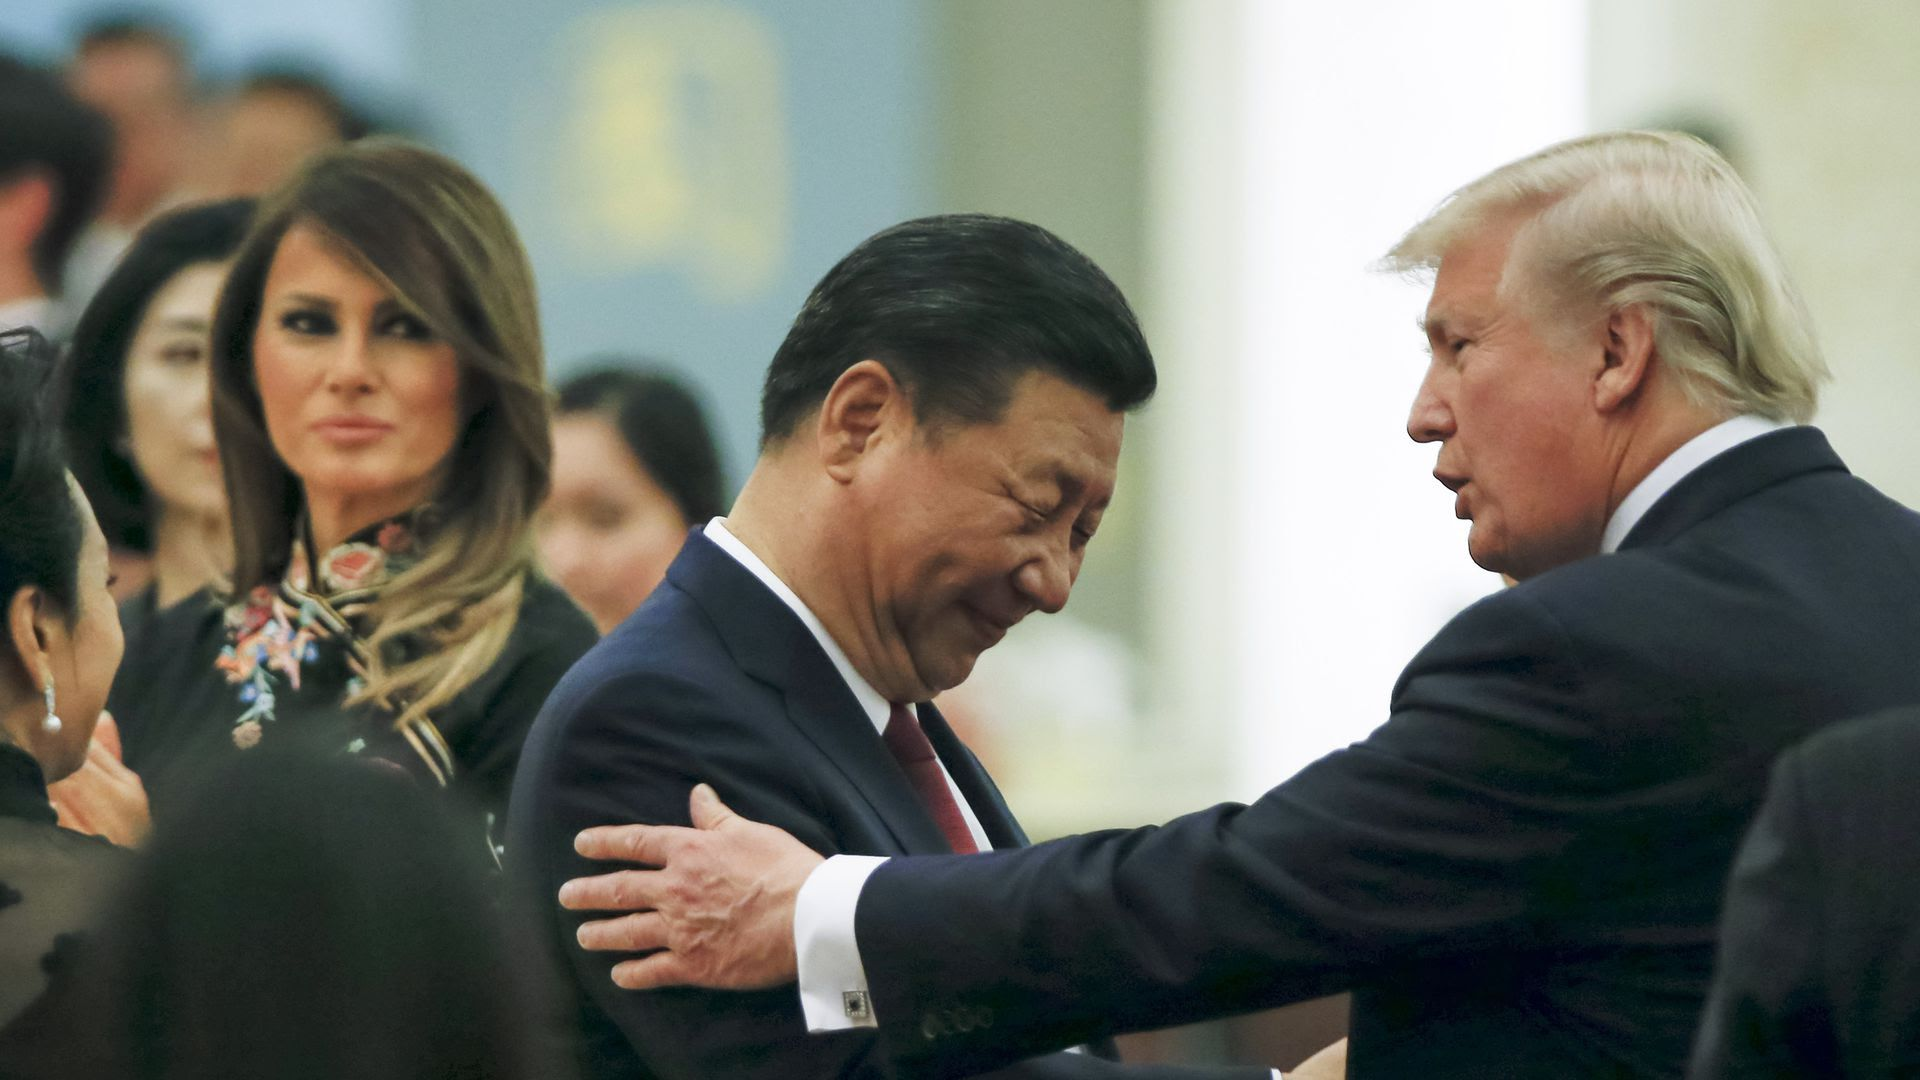 Presidents Trump and Xi.